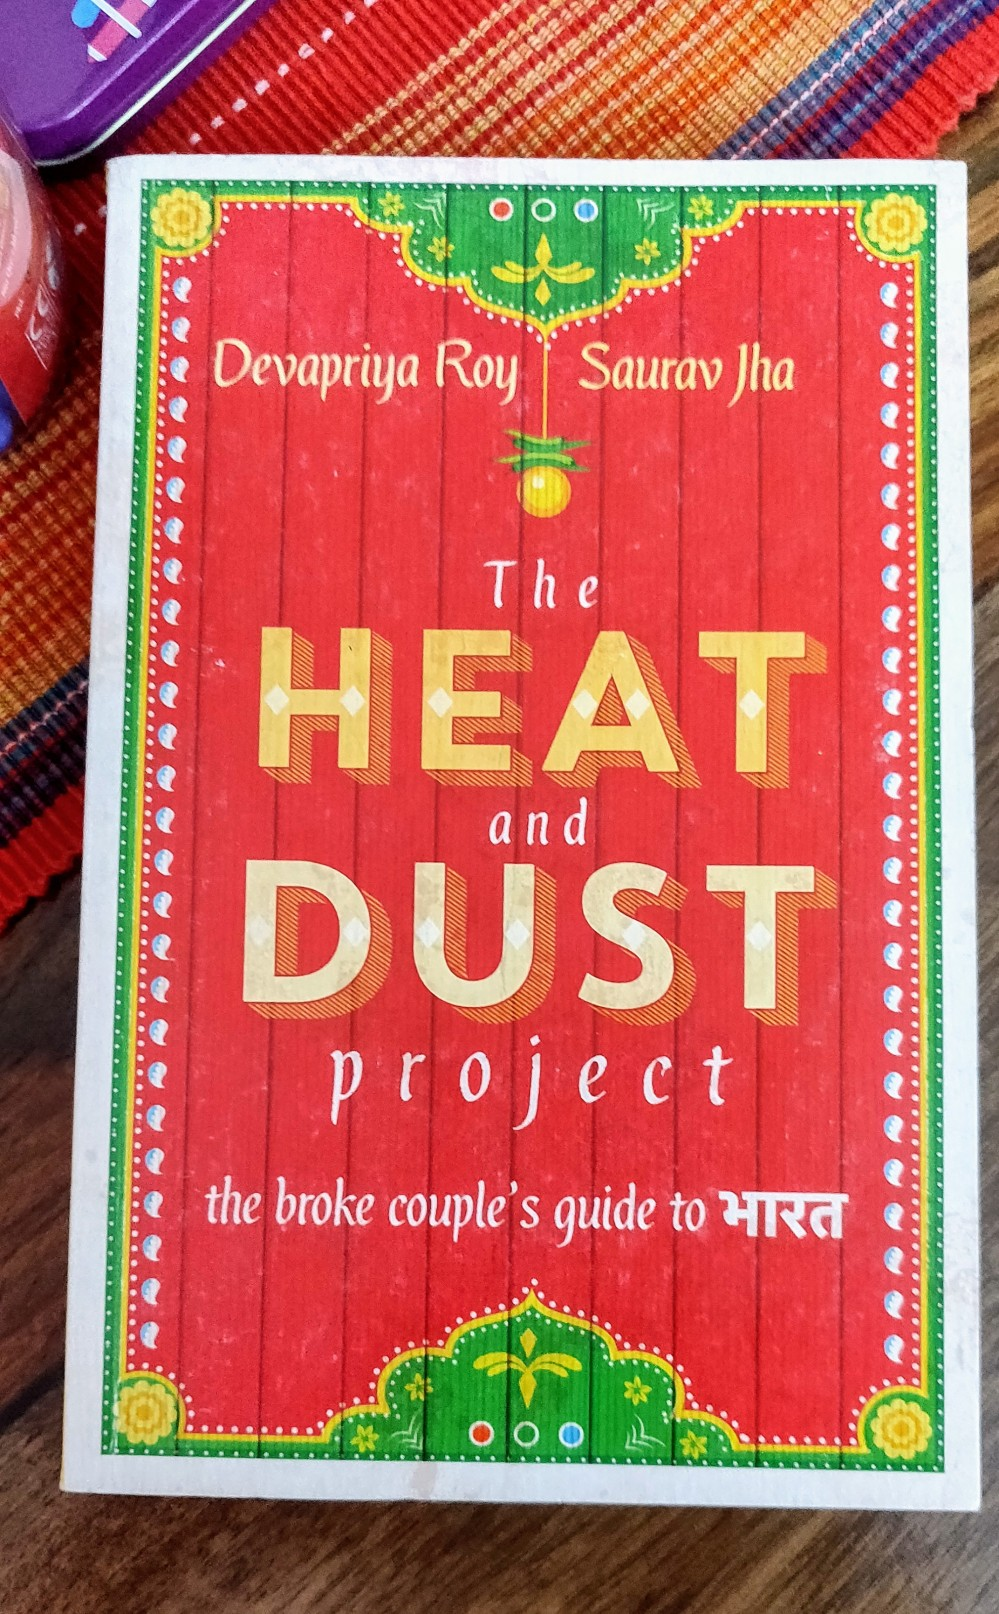 The Heat and Dust Project - the broke couple's guide to Bharath, by Devapriya Roy and Saurav Jha